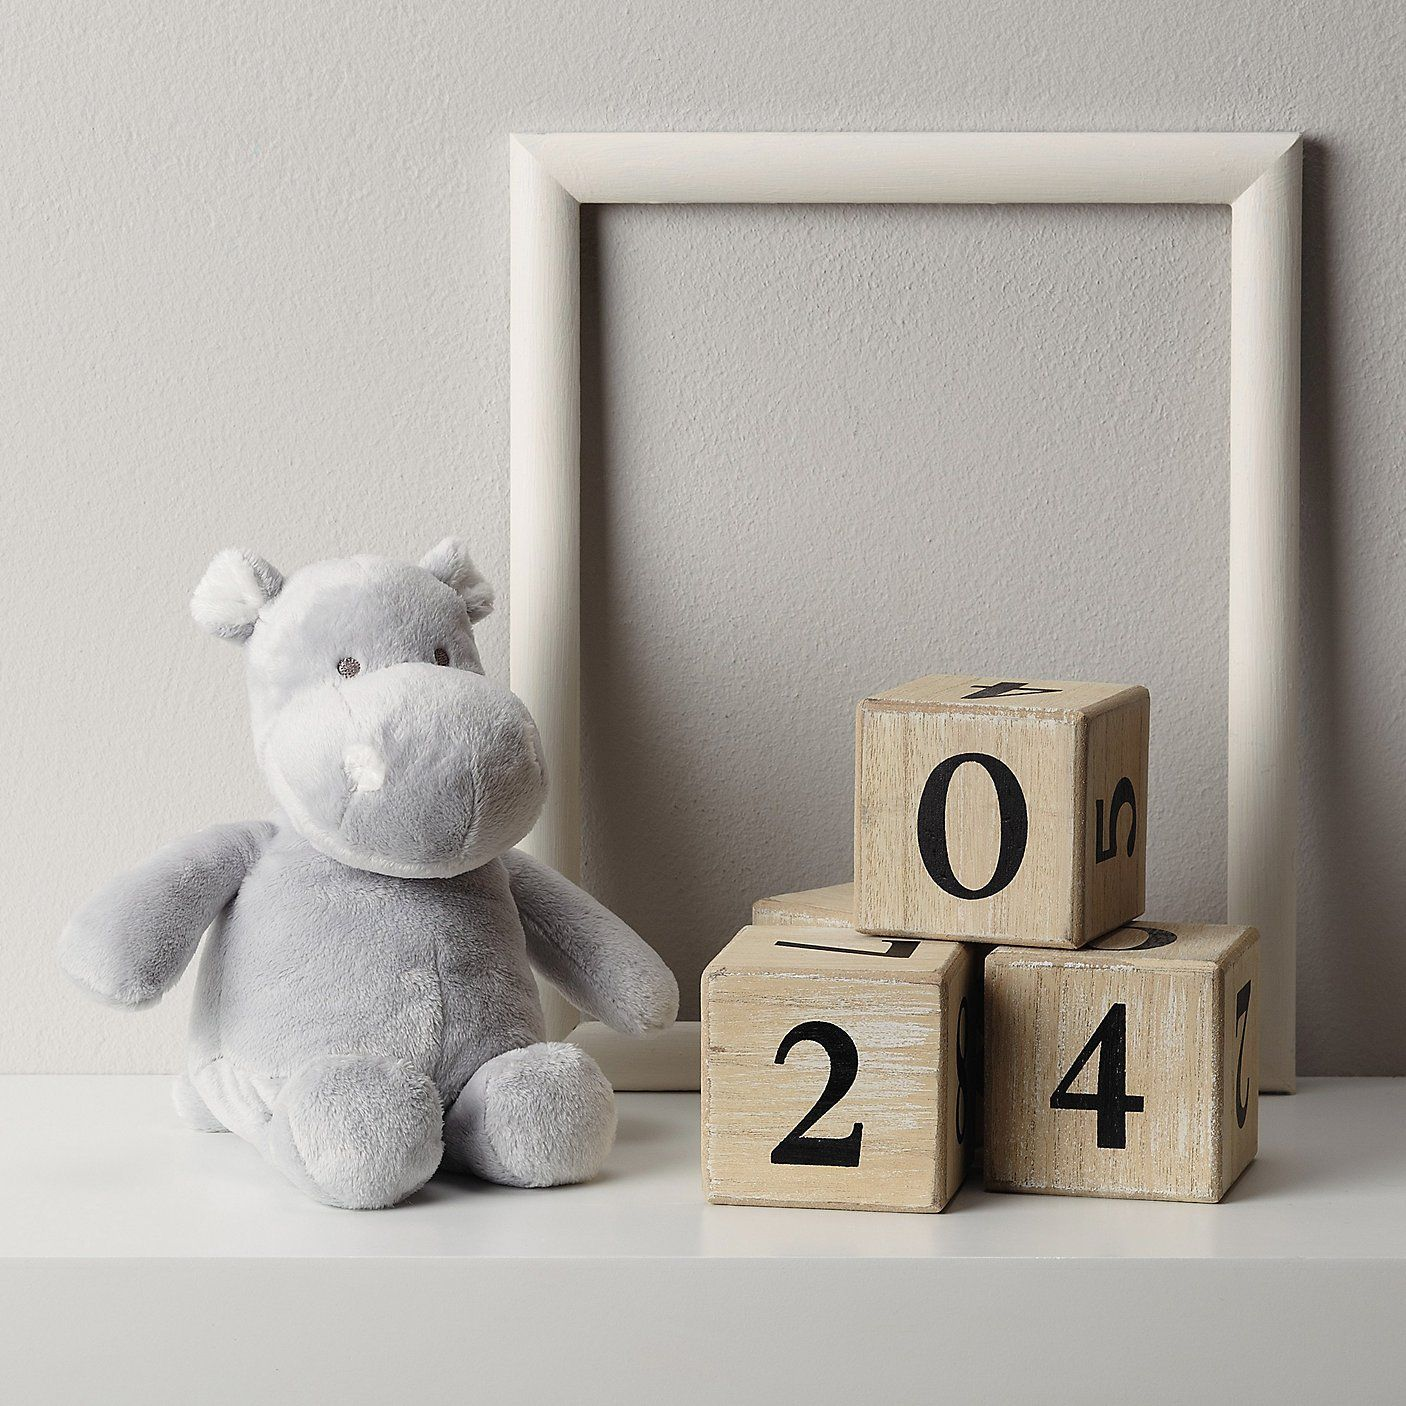 Buy Toys & Books > Newborn Toys > Harry Hippo Chime from The White Company